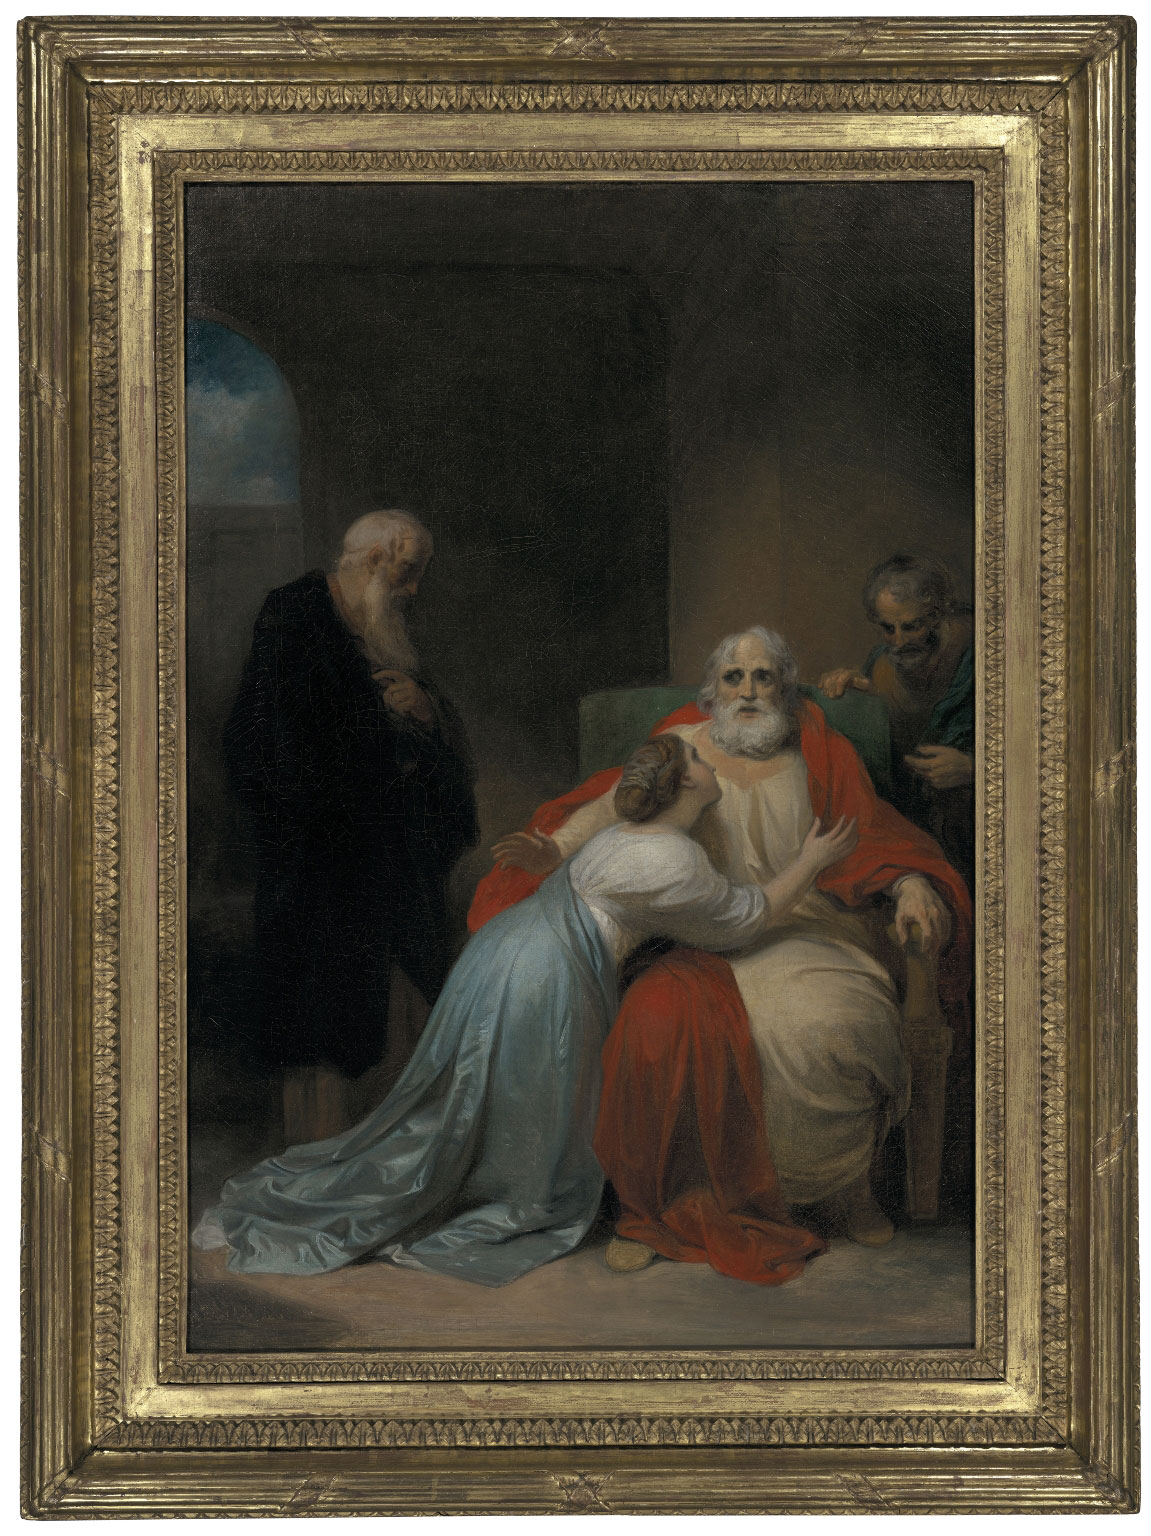 The Awakening of King Lear by Robert Smirke